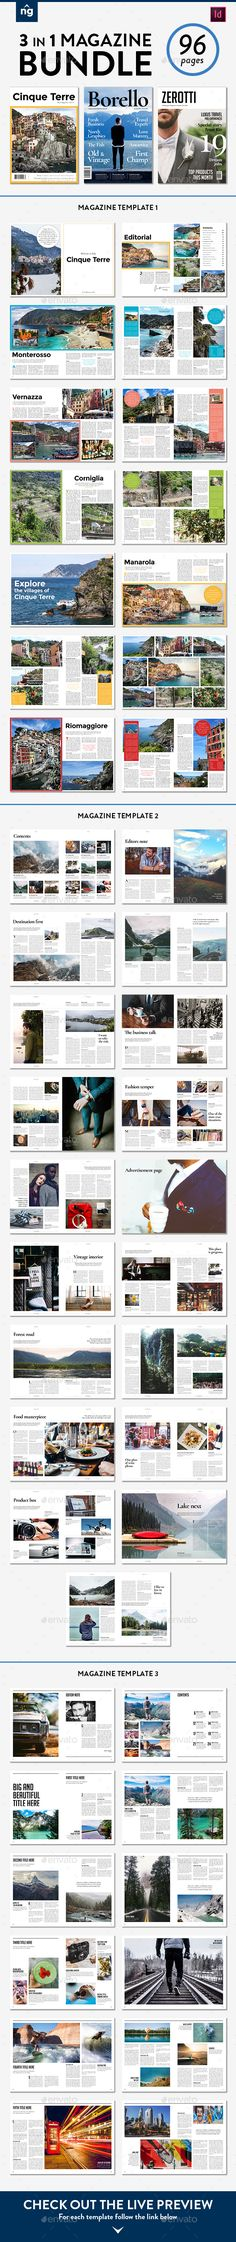 Magazine Template Bundle, Vol. 3 - Magazines Print Templates Download here : https://graphicriver.net/item/magazine-template-bundle-vol-3/19425883?s_rank=12&ref=Al-fatih